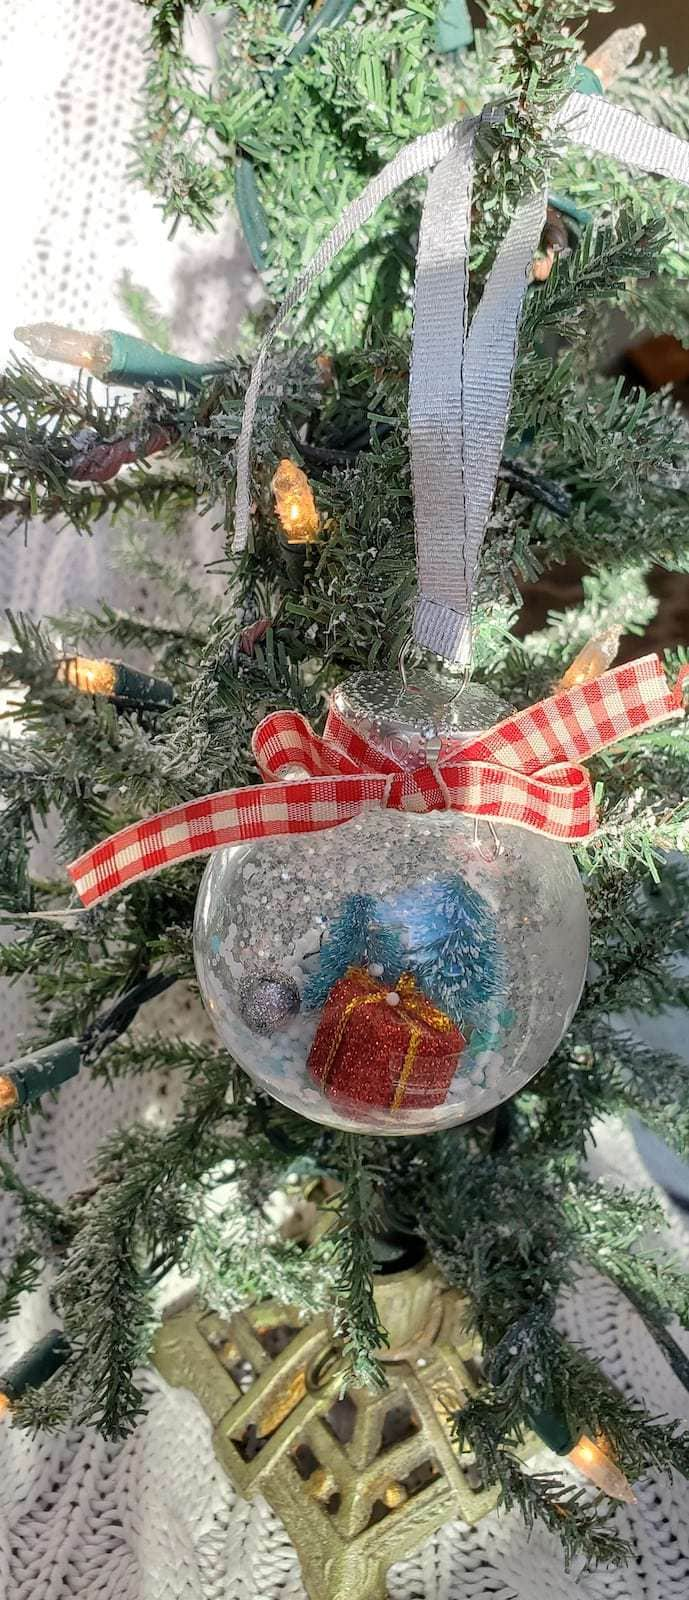 Photo of ornament hanging on a tree